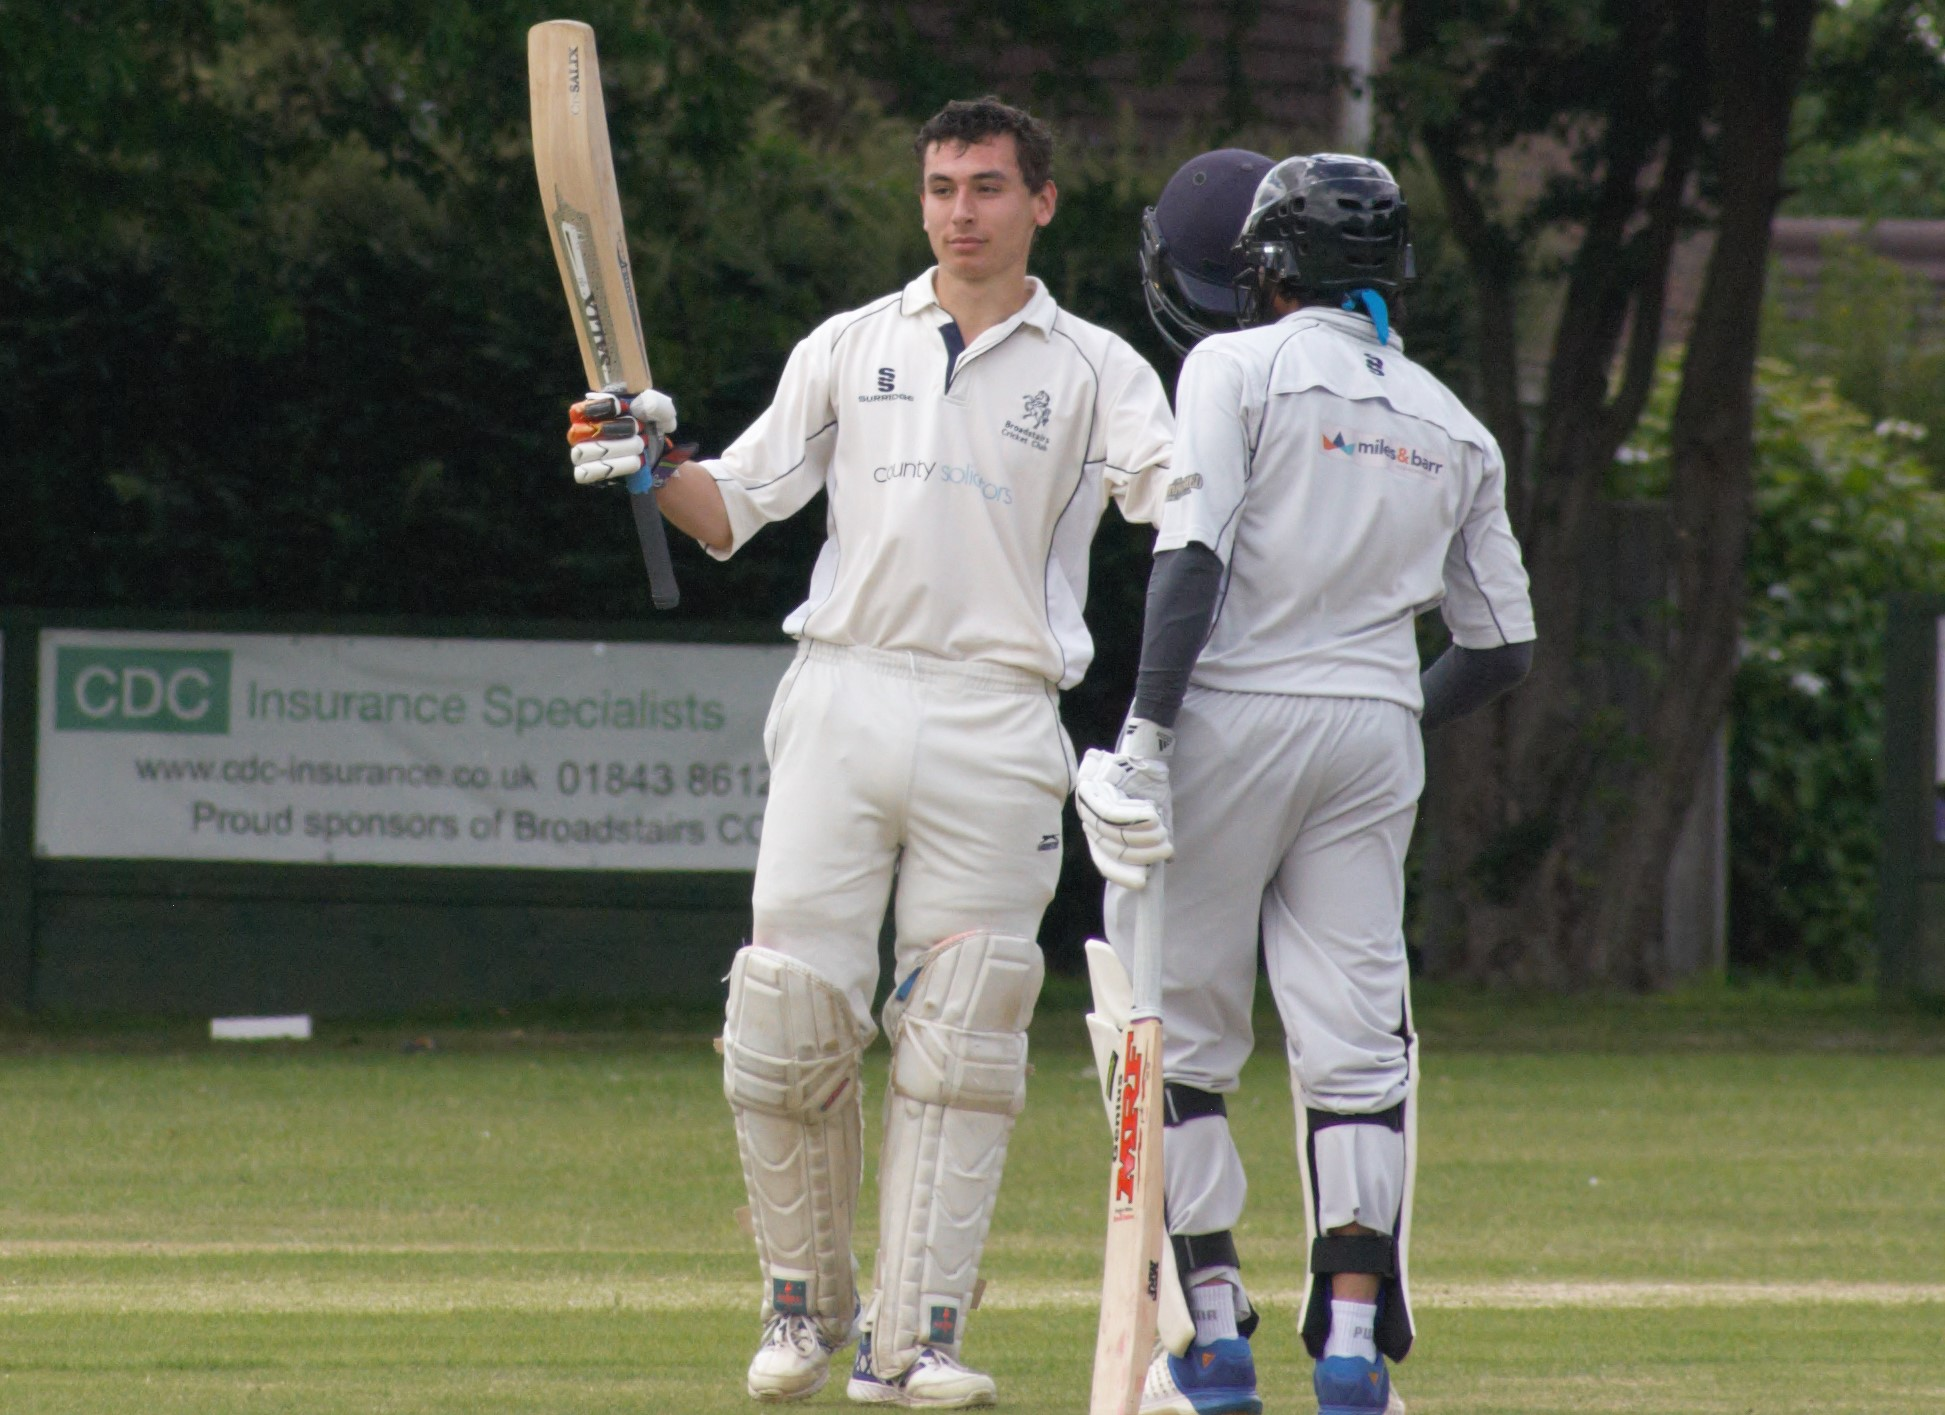 1st XI win again but 2nd XI struggle to defeat